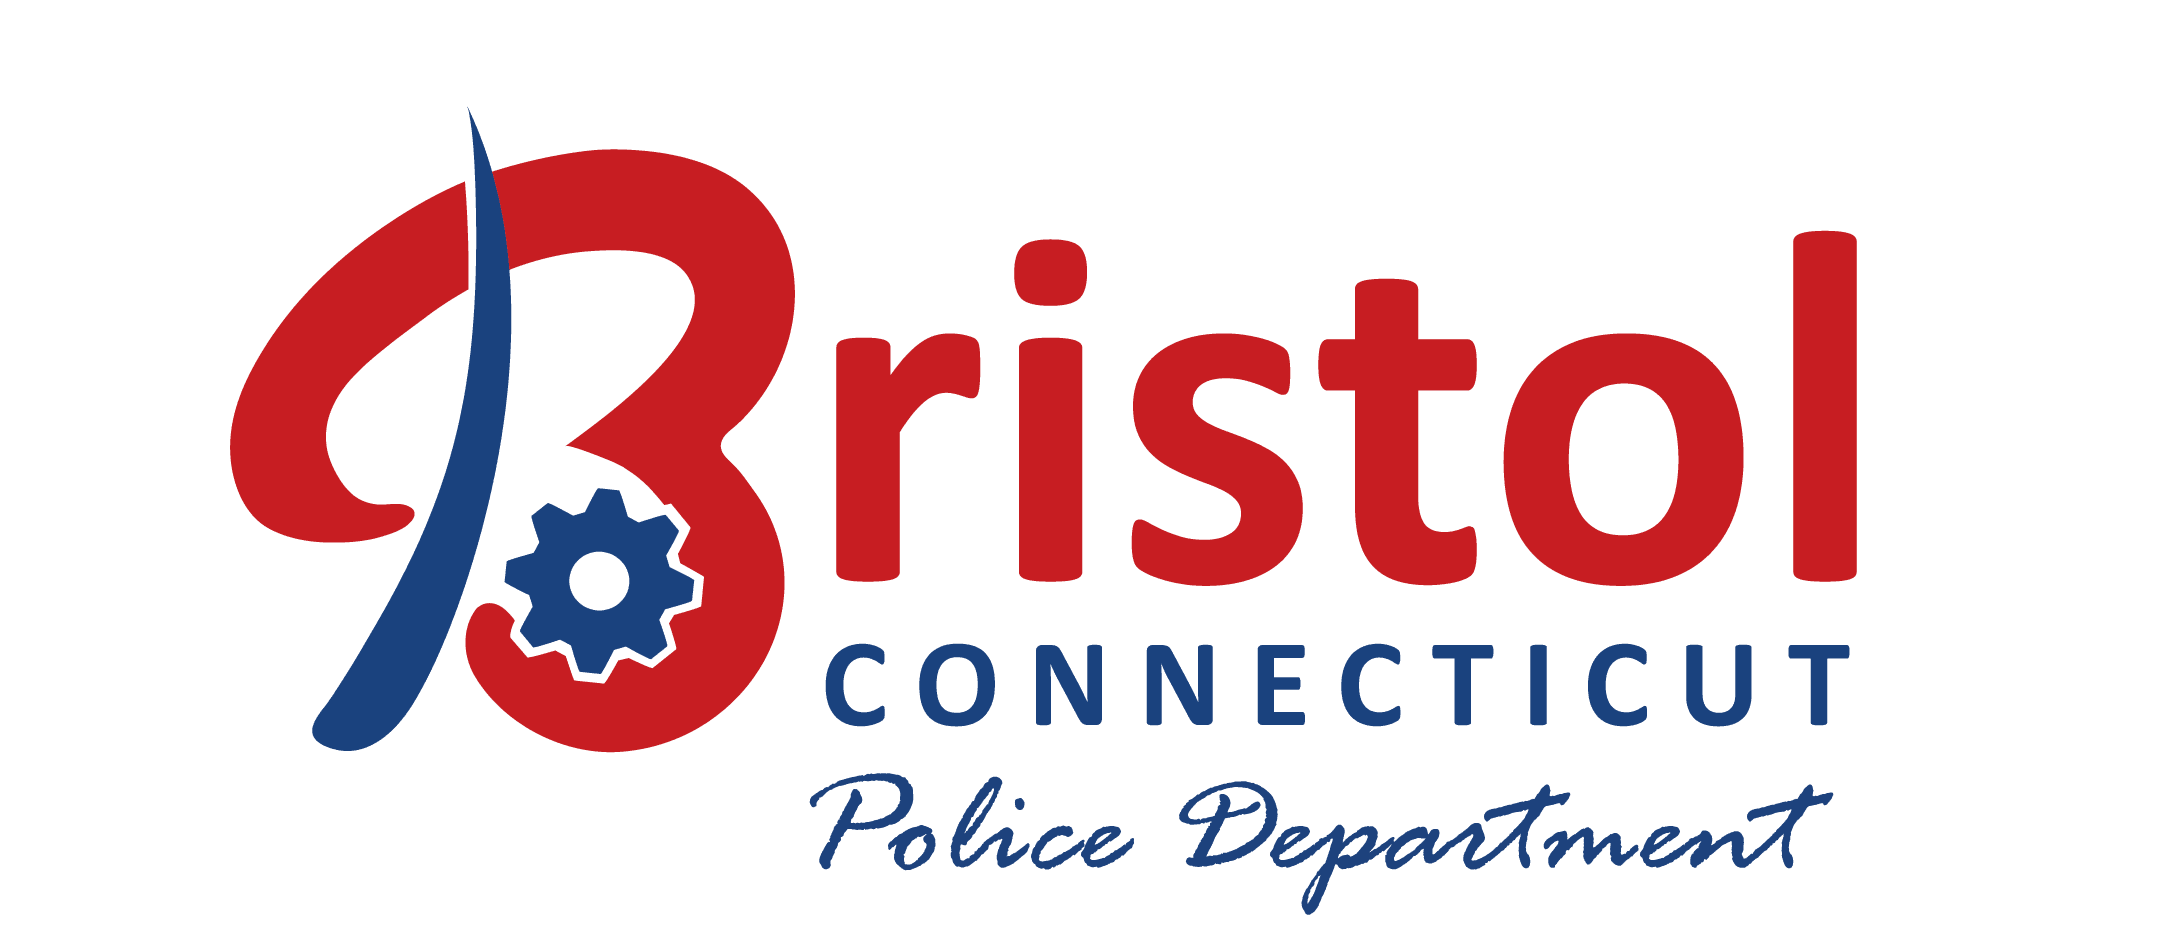 Bristol Logo Police Department